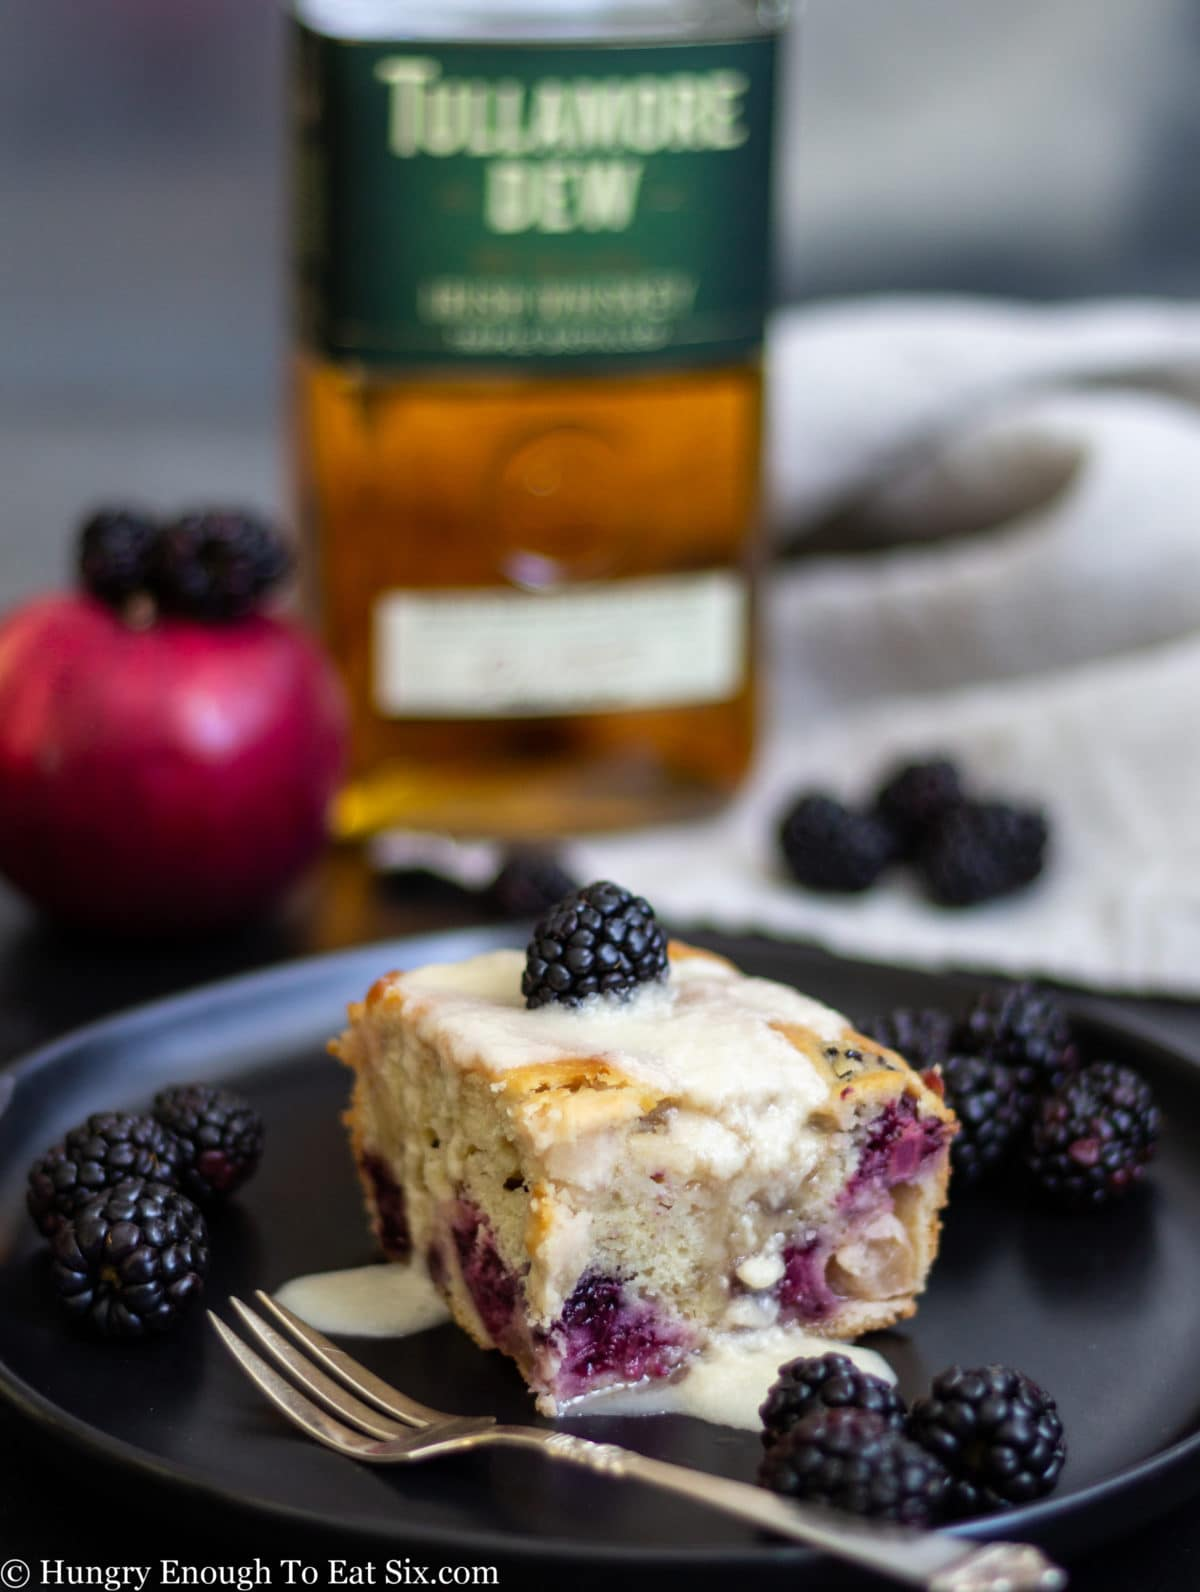 Berry filled cake slice on a plate with a bottle of whiskey in the background